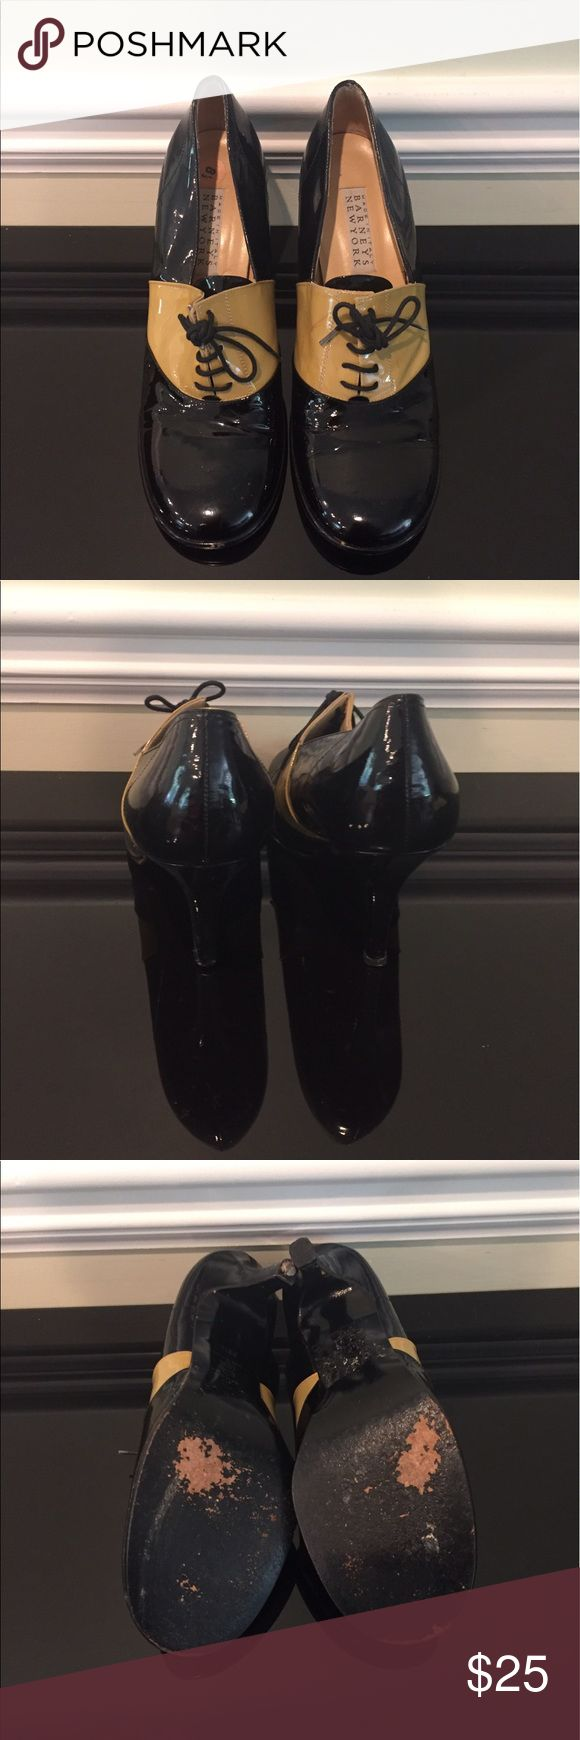 """Barneys NY two tone lace up pumps. Sz 8.5. Barneys New York two tone patent leather pumps. 3"""" heel. Good used condition. Barneys New York Shoes Heels"""